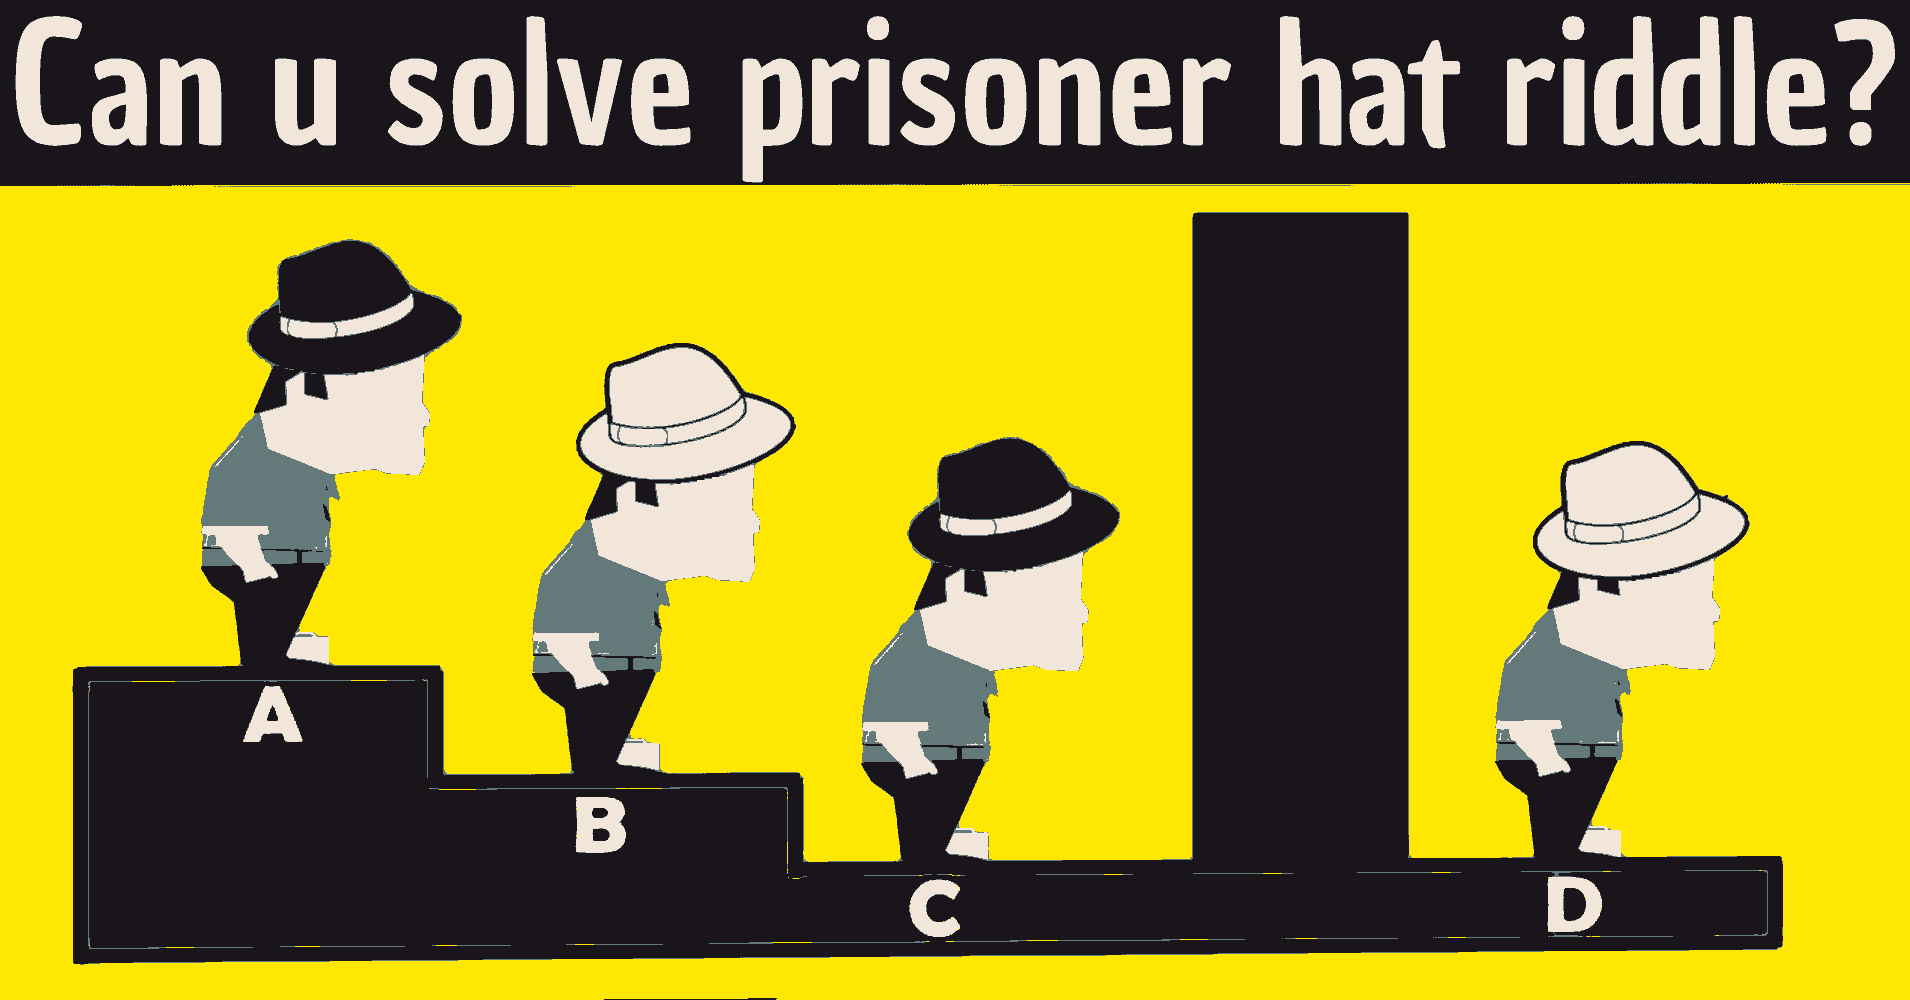 4 Prisoner Hat Riddle Answer Test Your Smarts Riddles With Answers For Kids Adults Quizzes